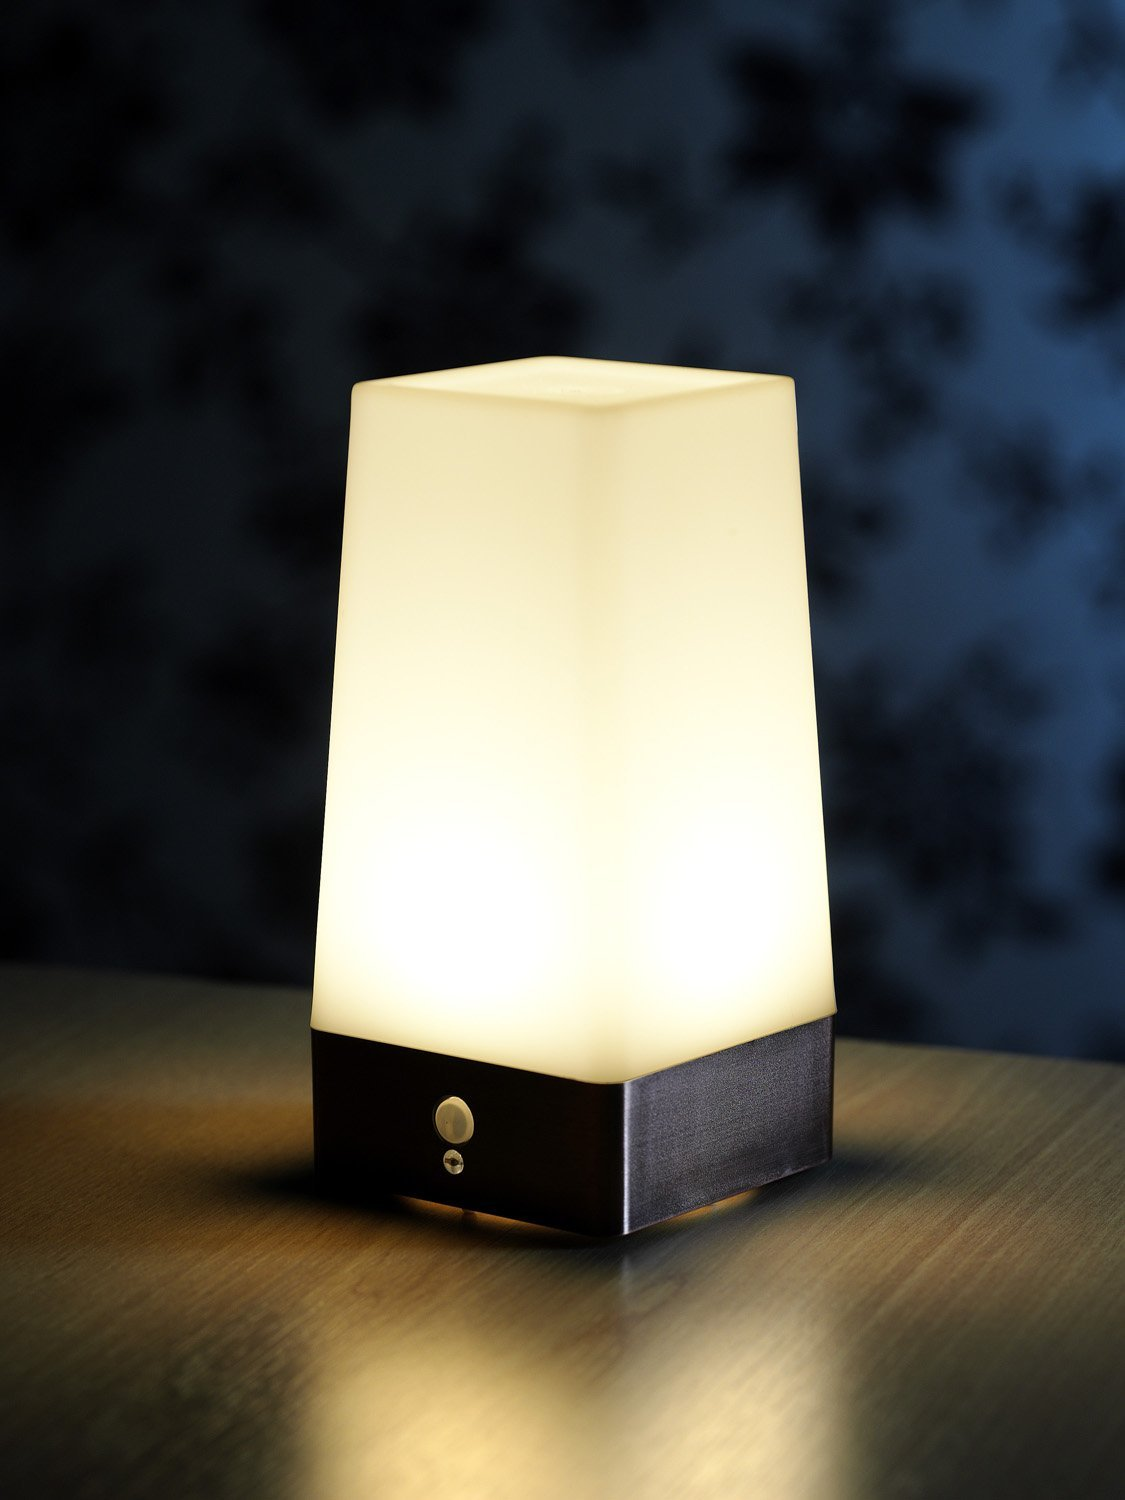 Auraglow Wireless Pir Motion Sensor Lamp Battery Hallway